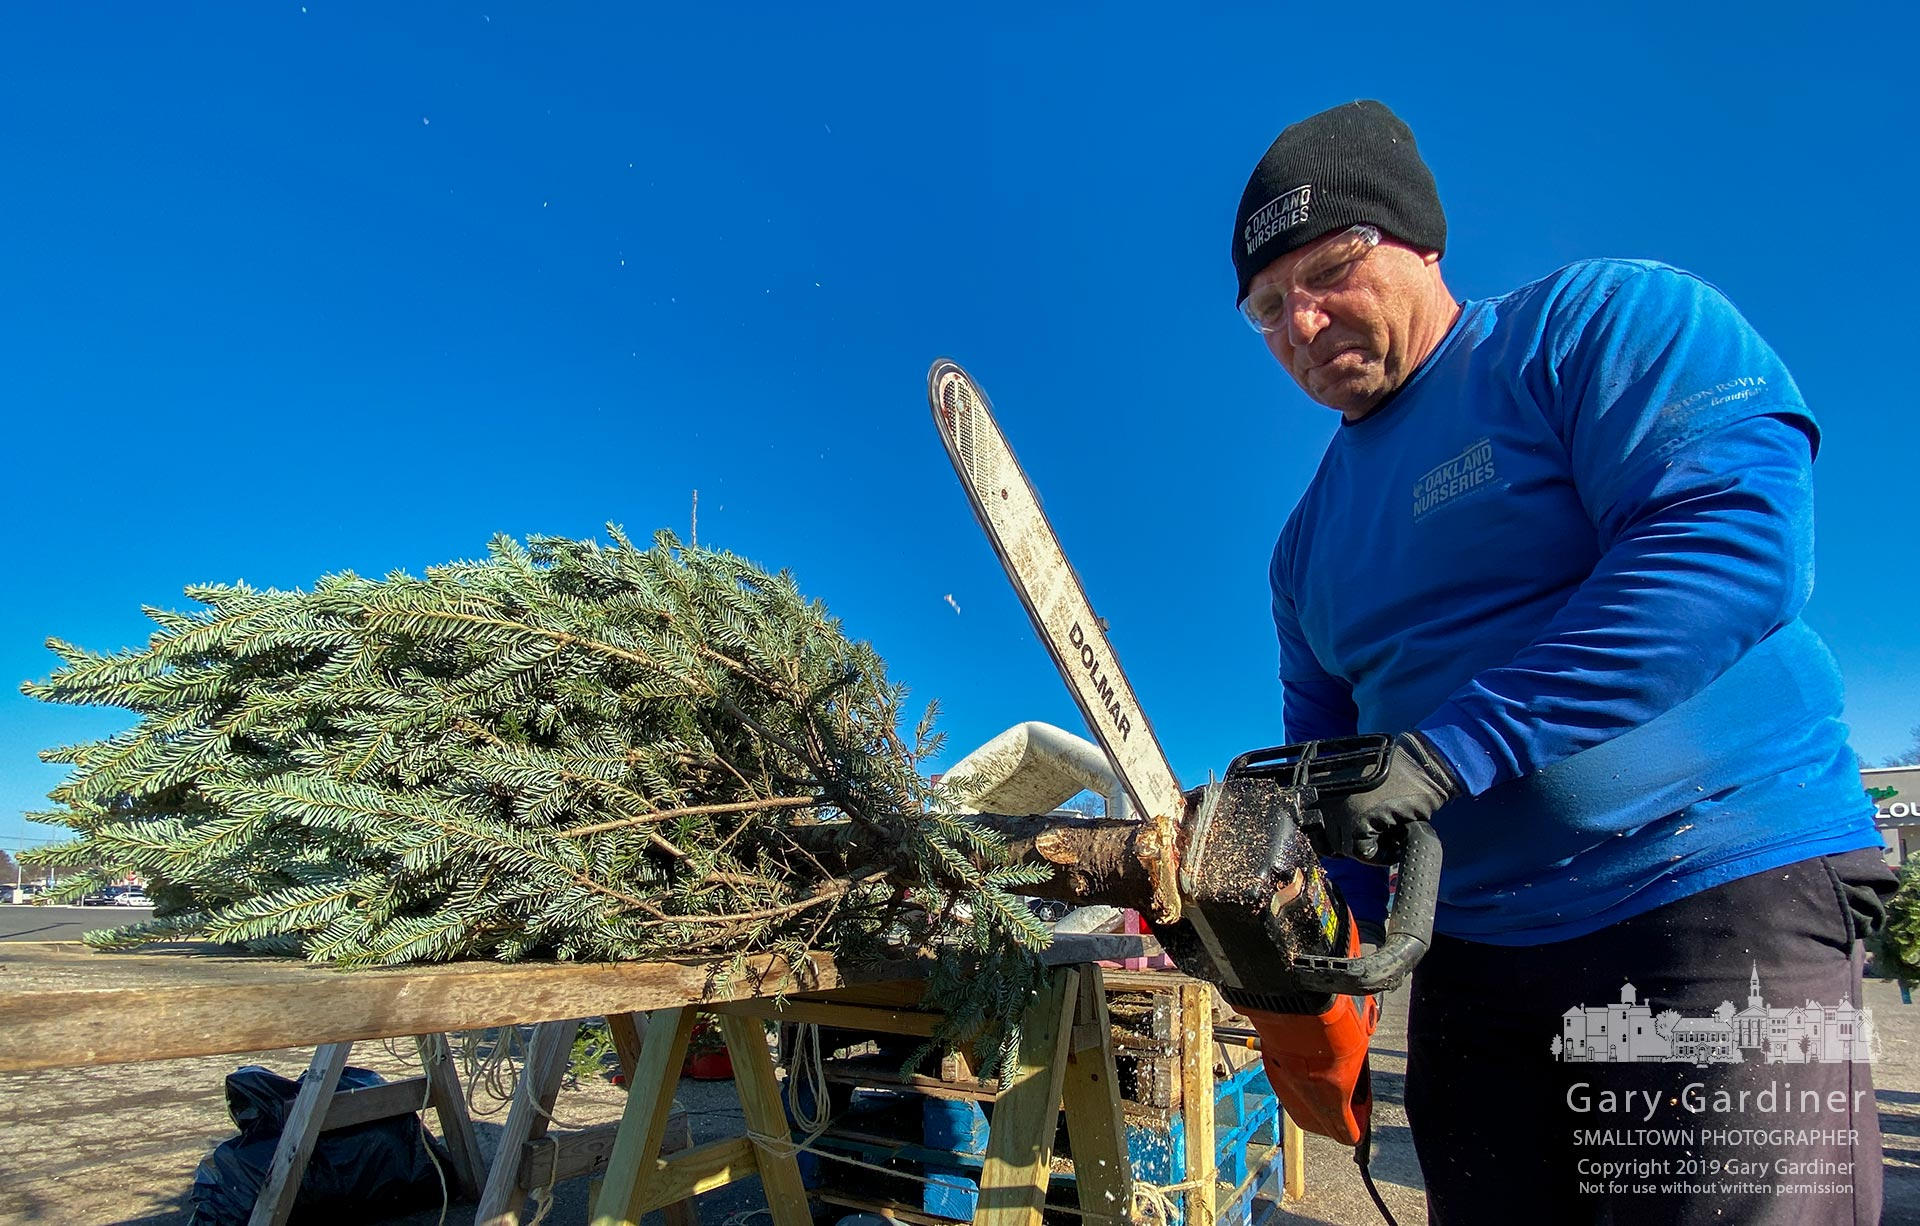 One of the last trees sold at the Glengary Center Christmas Tree lot gets a trim and a shave before being bundled in plastic and tied atop a customer's vehicle. My Final Photo for Dec. 22, 2019.